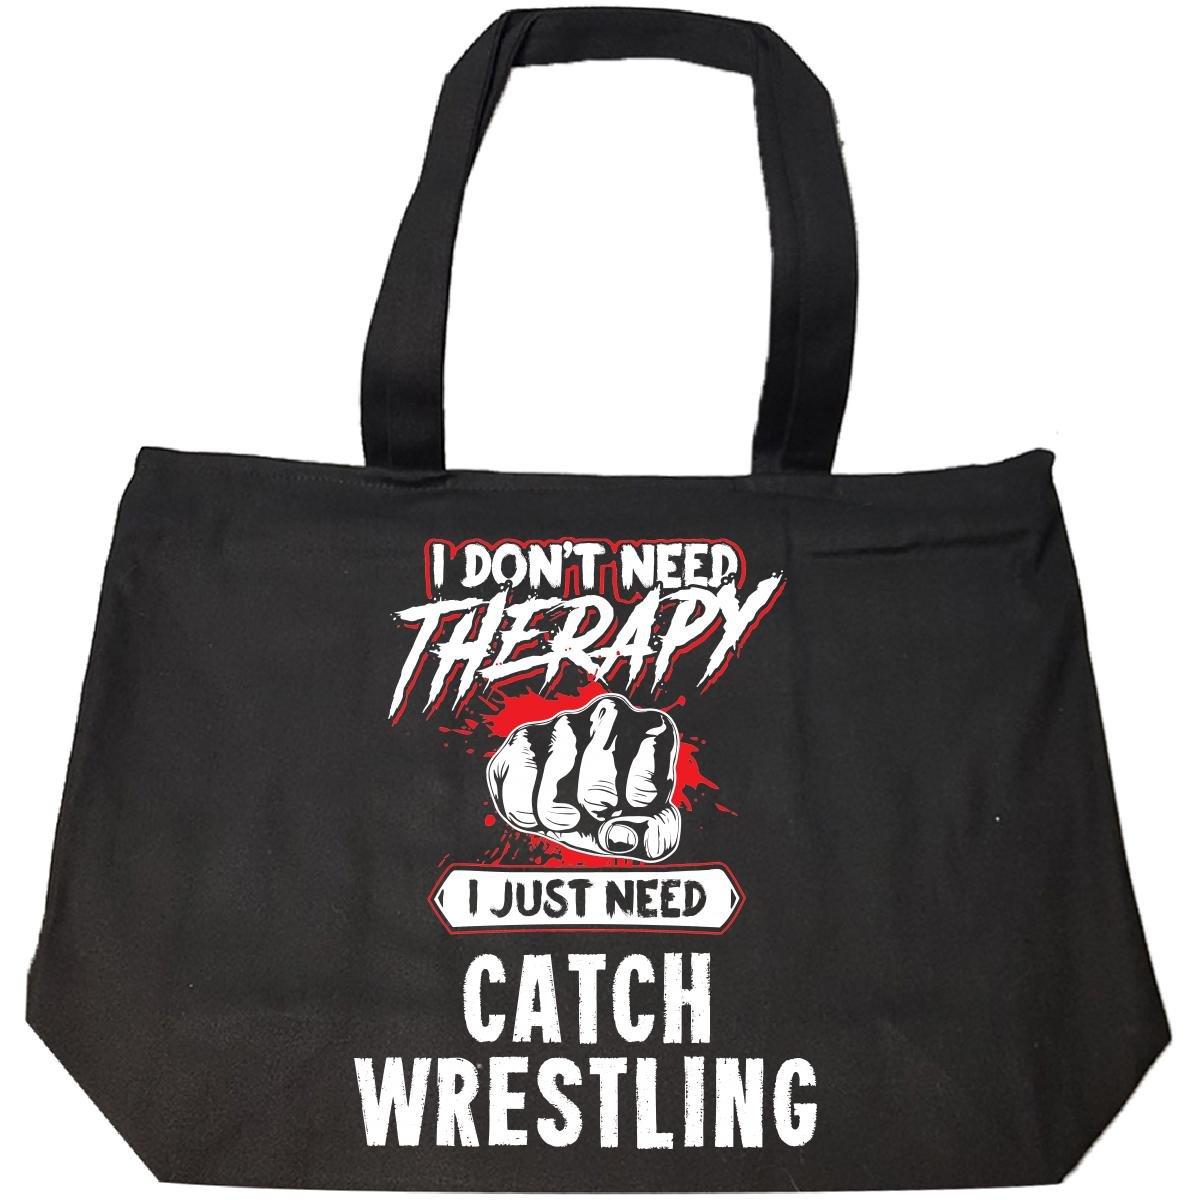 Don't Need Therapy Just Need Catch Wrestling Funny Mma Gift - Tote Bag With Zip by My Family Tee